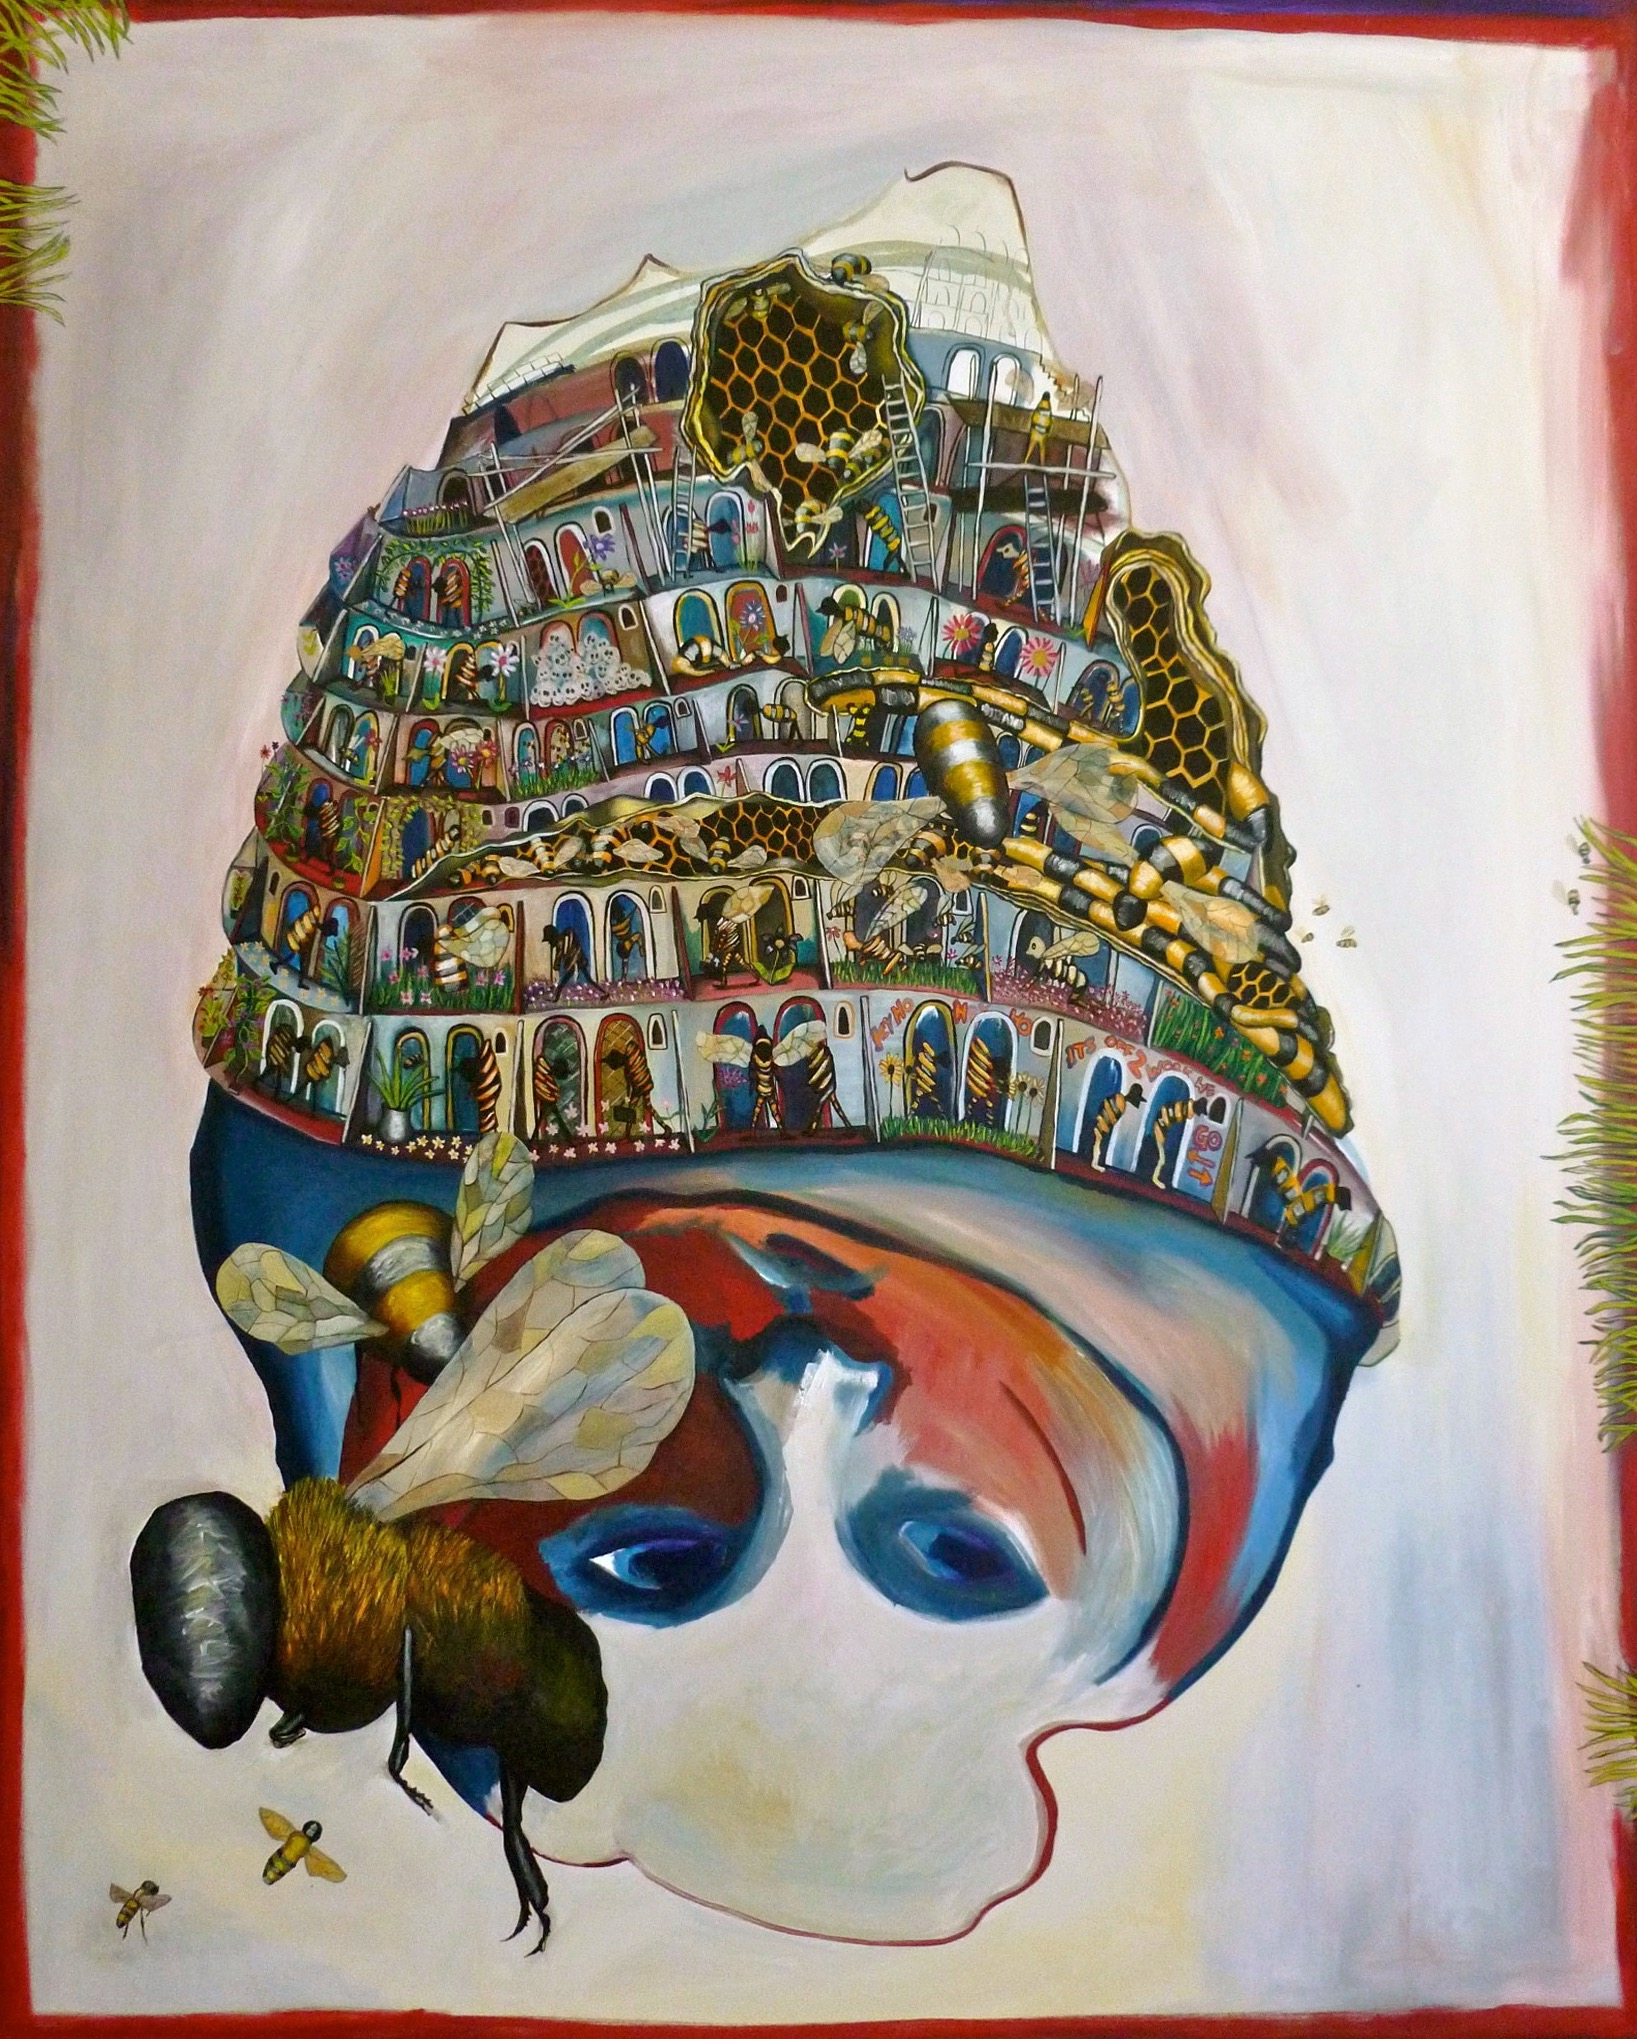 HEY HO - 152CM X 122CM - OIL ON CANVAS - 2011